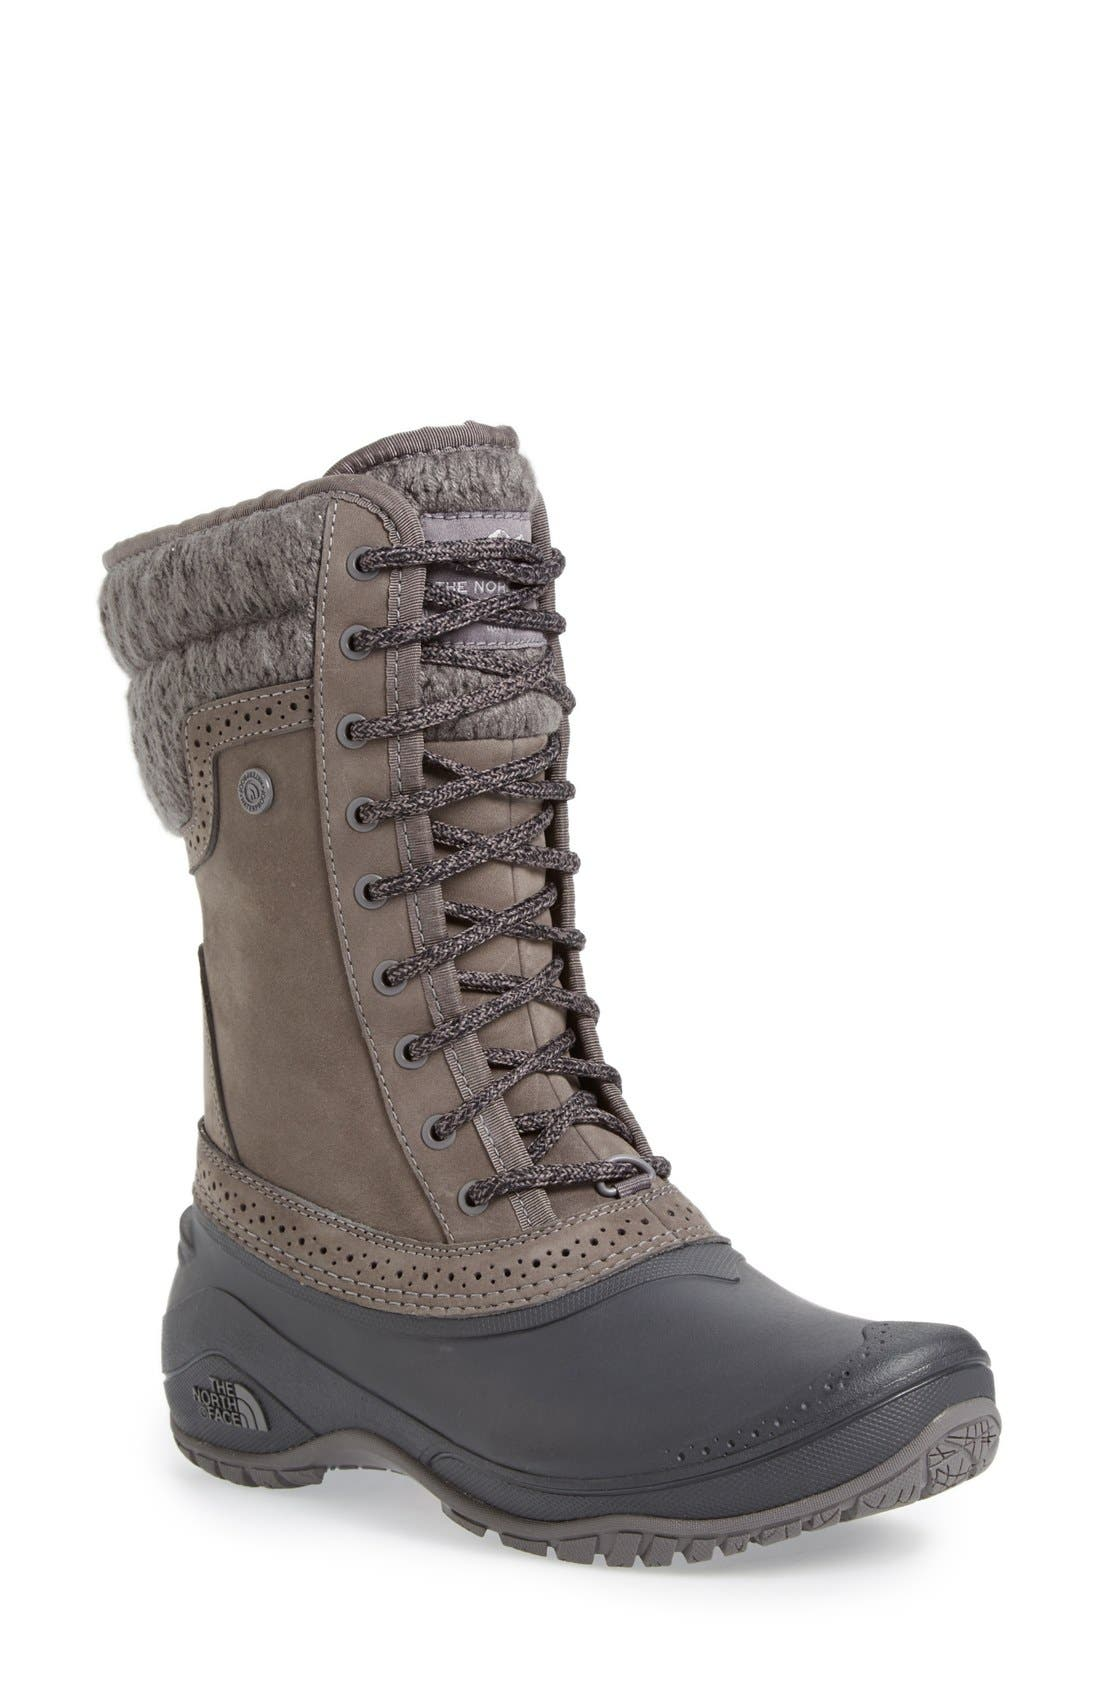 Main Image - The North Face Shellista Waterproof Insulated Snow Boot (Women)